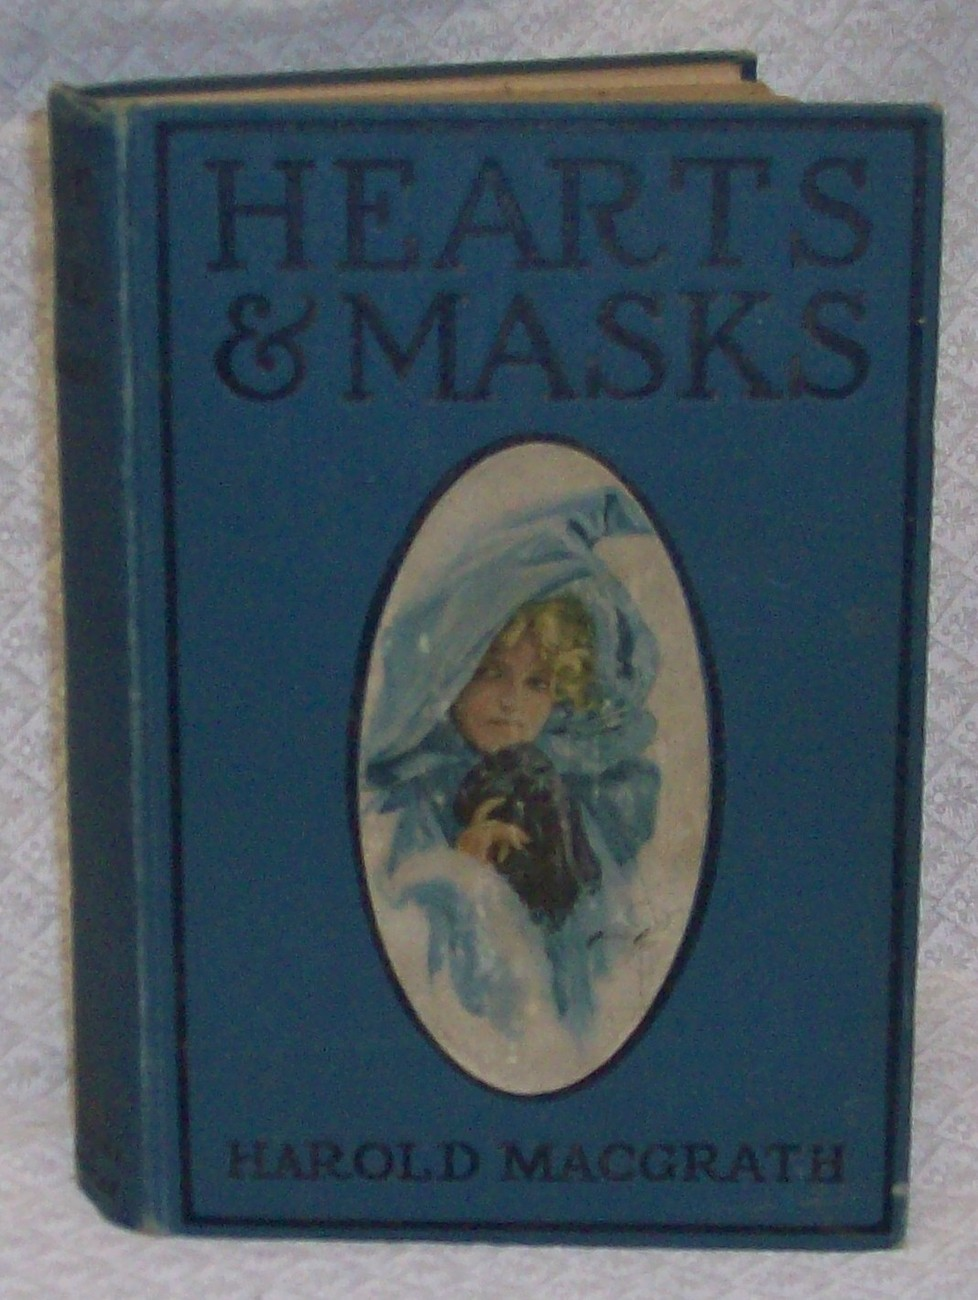 Hearts and Masks McGrath Harold image 1